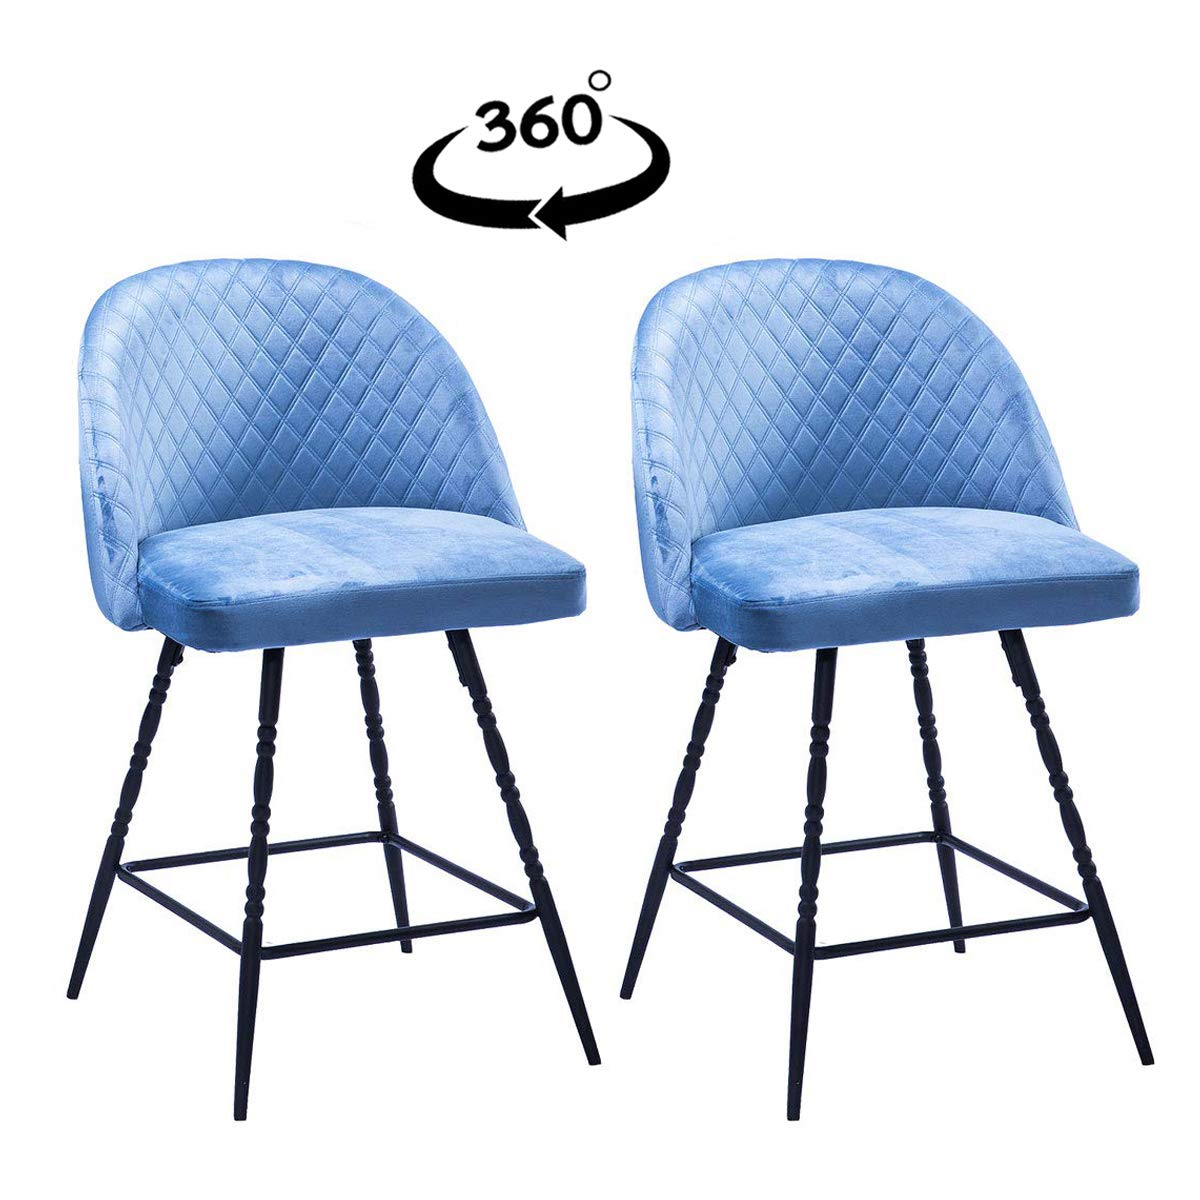 Yongqiang 26 inch Upholstered Swivel Stools Blue Velvet Bar Stools Set of 2 Metal Counter Height Bar Chairs